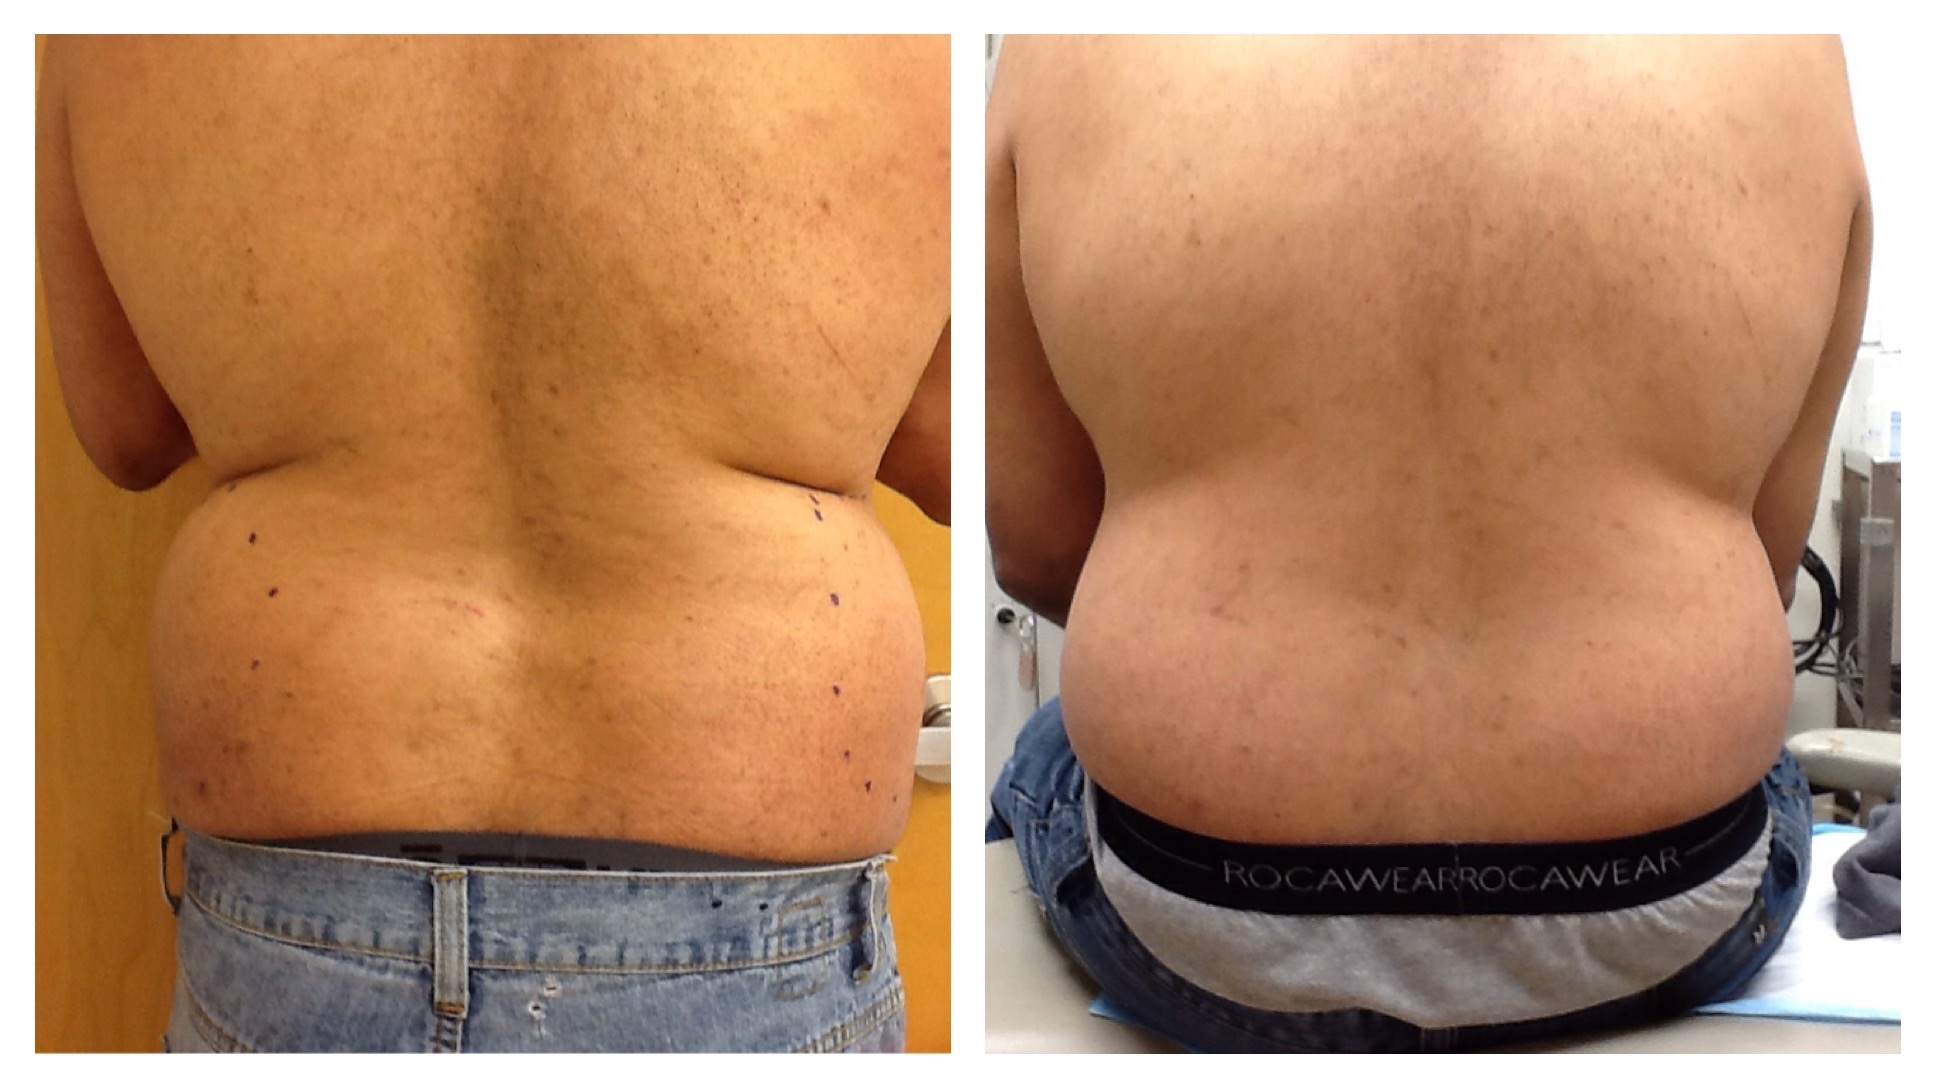 UltraShape for Mens Love Handles in Boston and Rhode Island